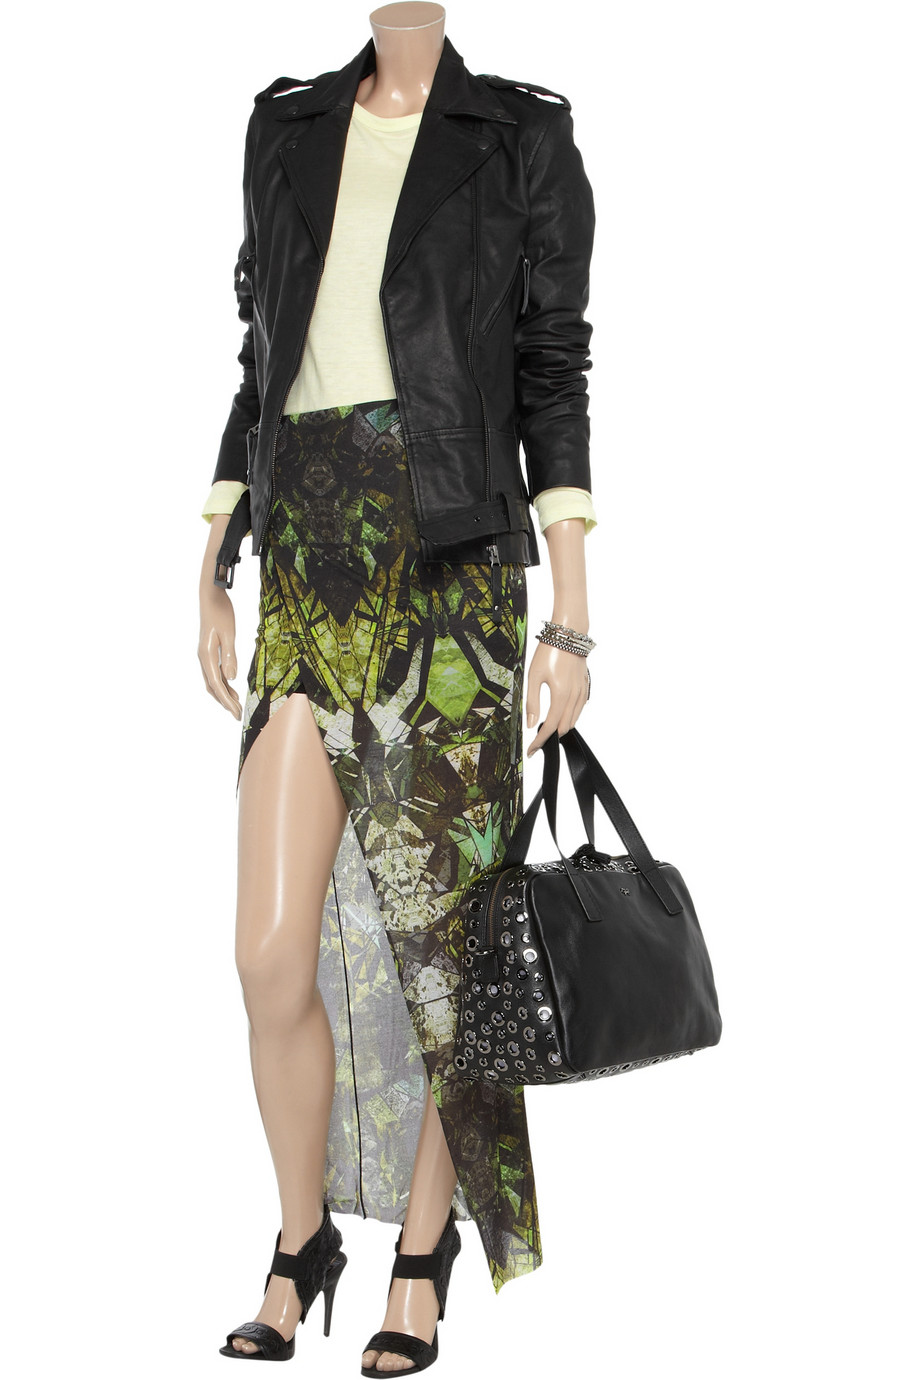 Lyst Sara Berman Edie Leather Jacket In Black